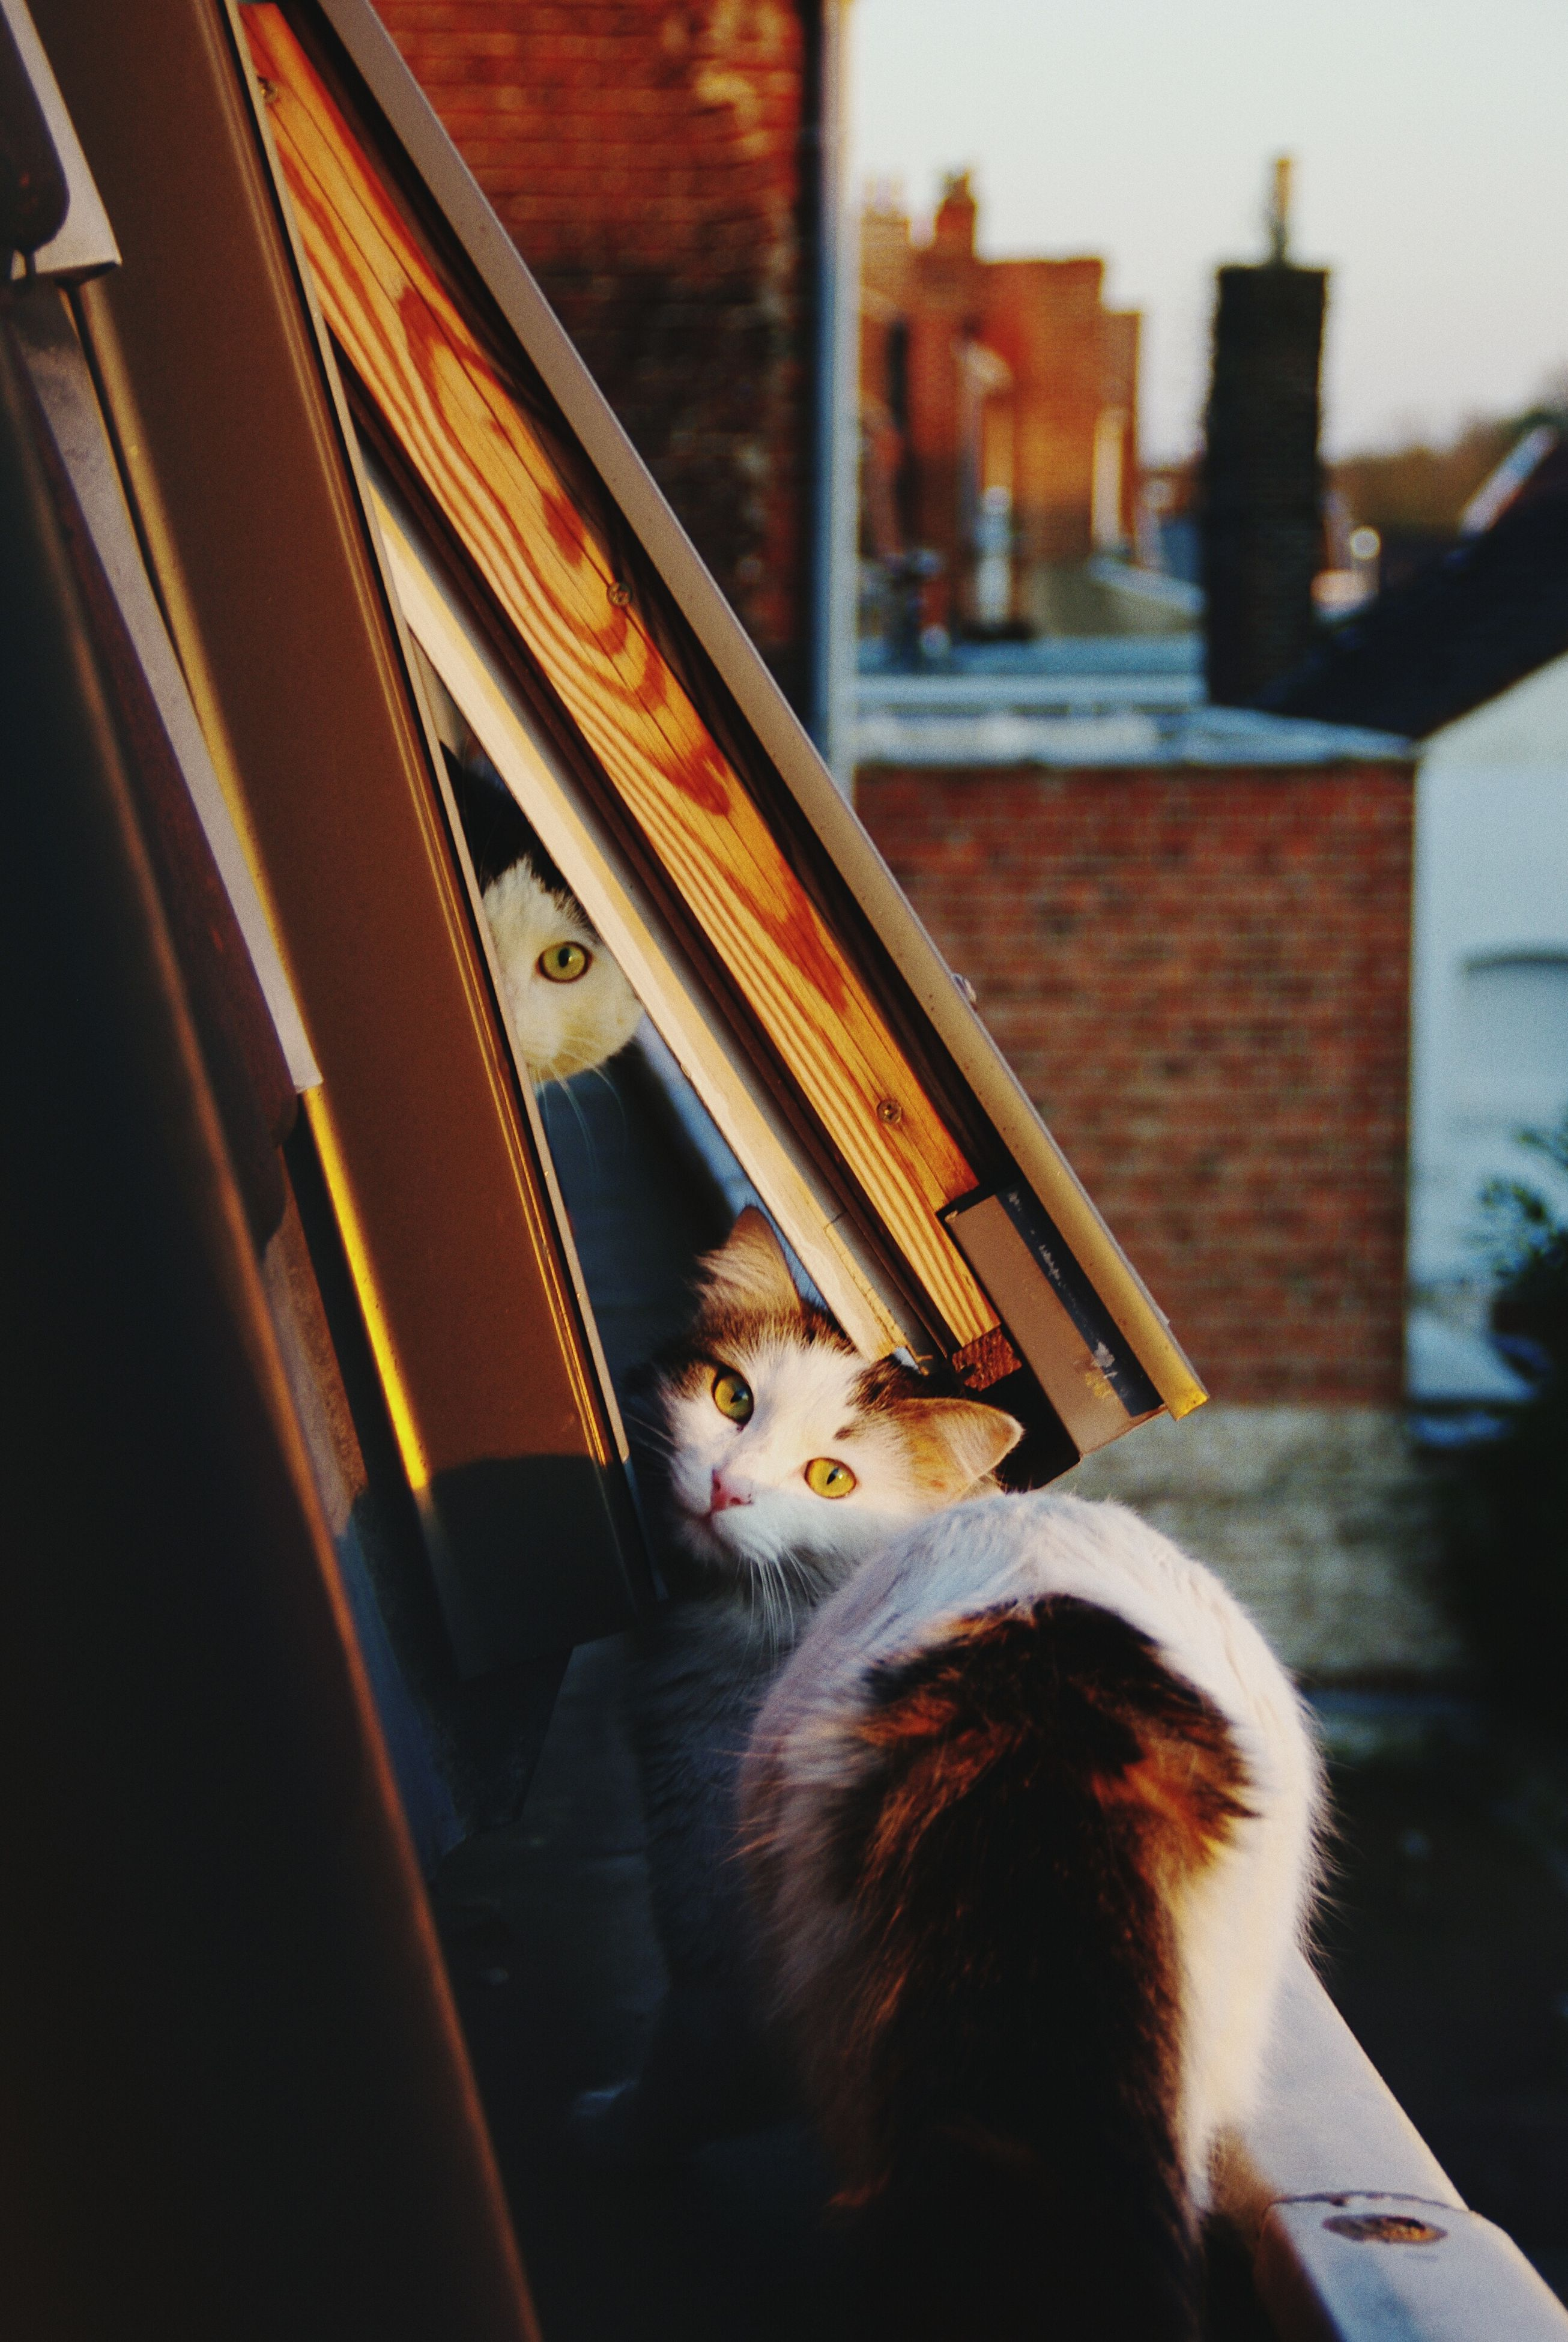 pets, animal themes, one animal, domestic animals, mammal, domestic cat, cat, indoors, feline, window, dog, sitting, whisker, architecture, built structure, home interior, relaxation, looking away, house, focus on foreground